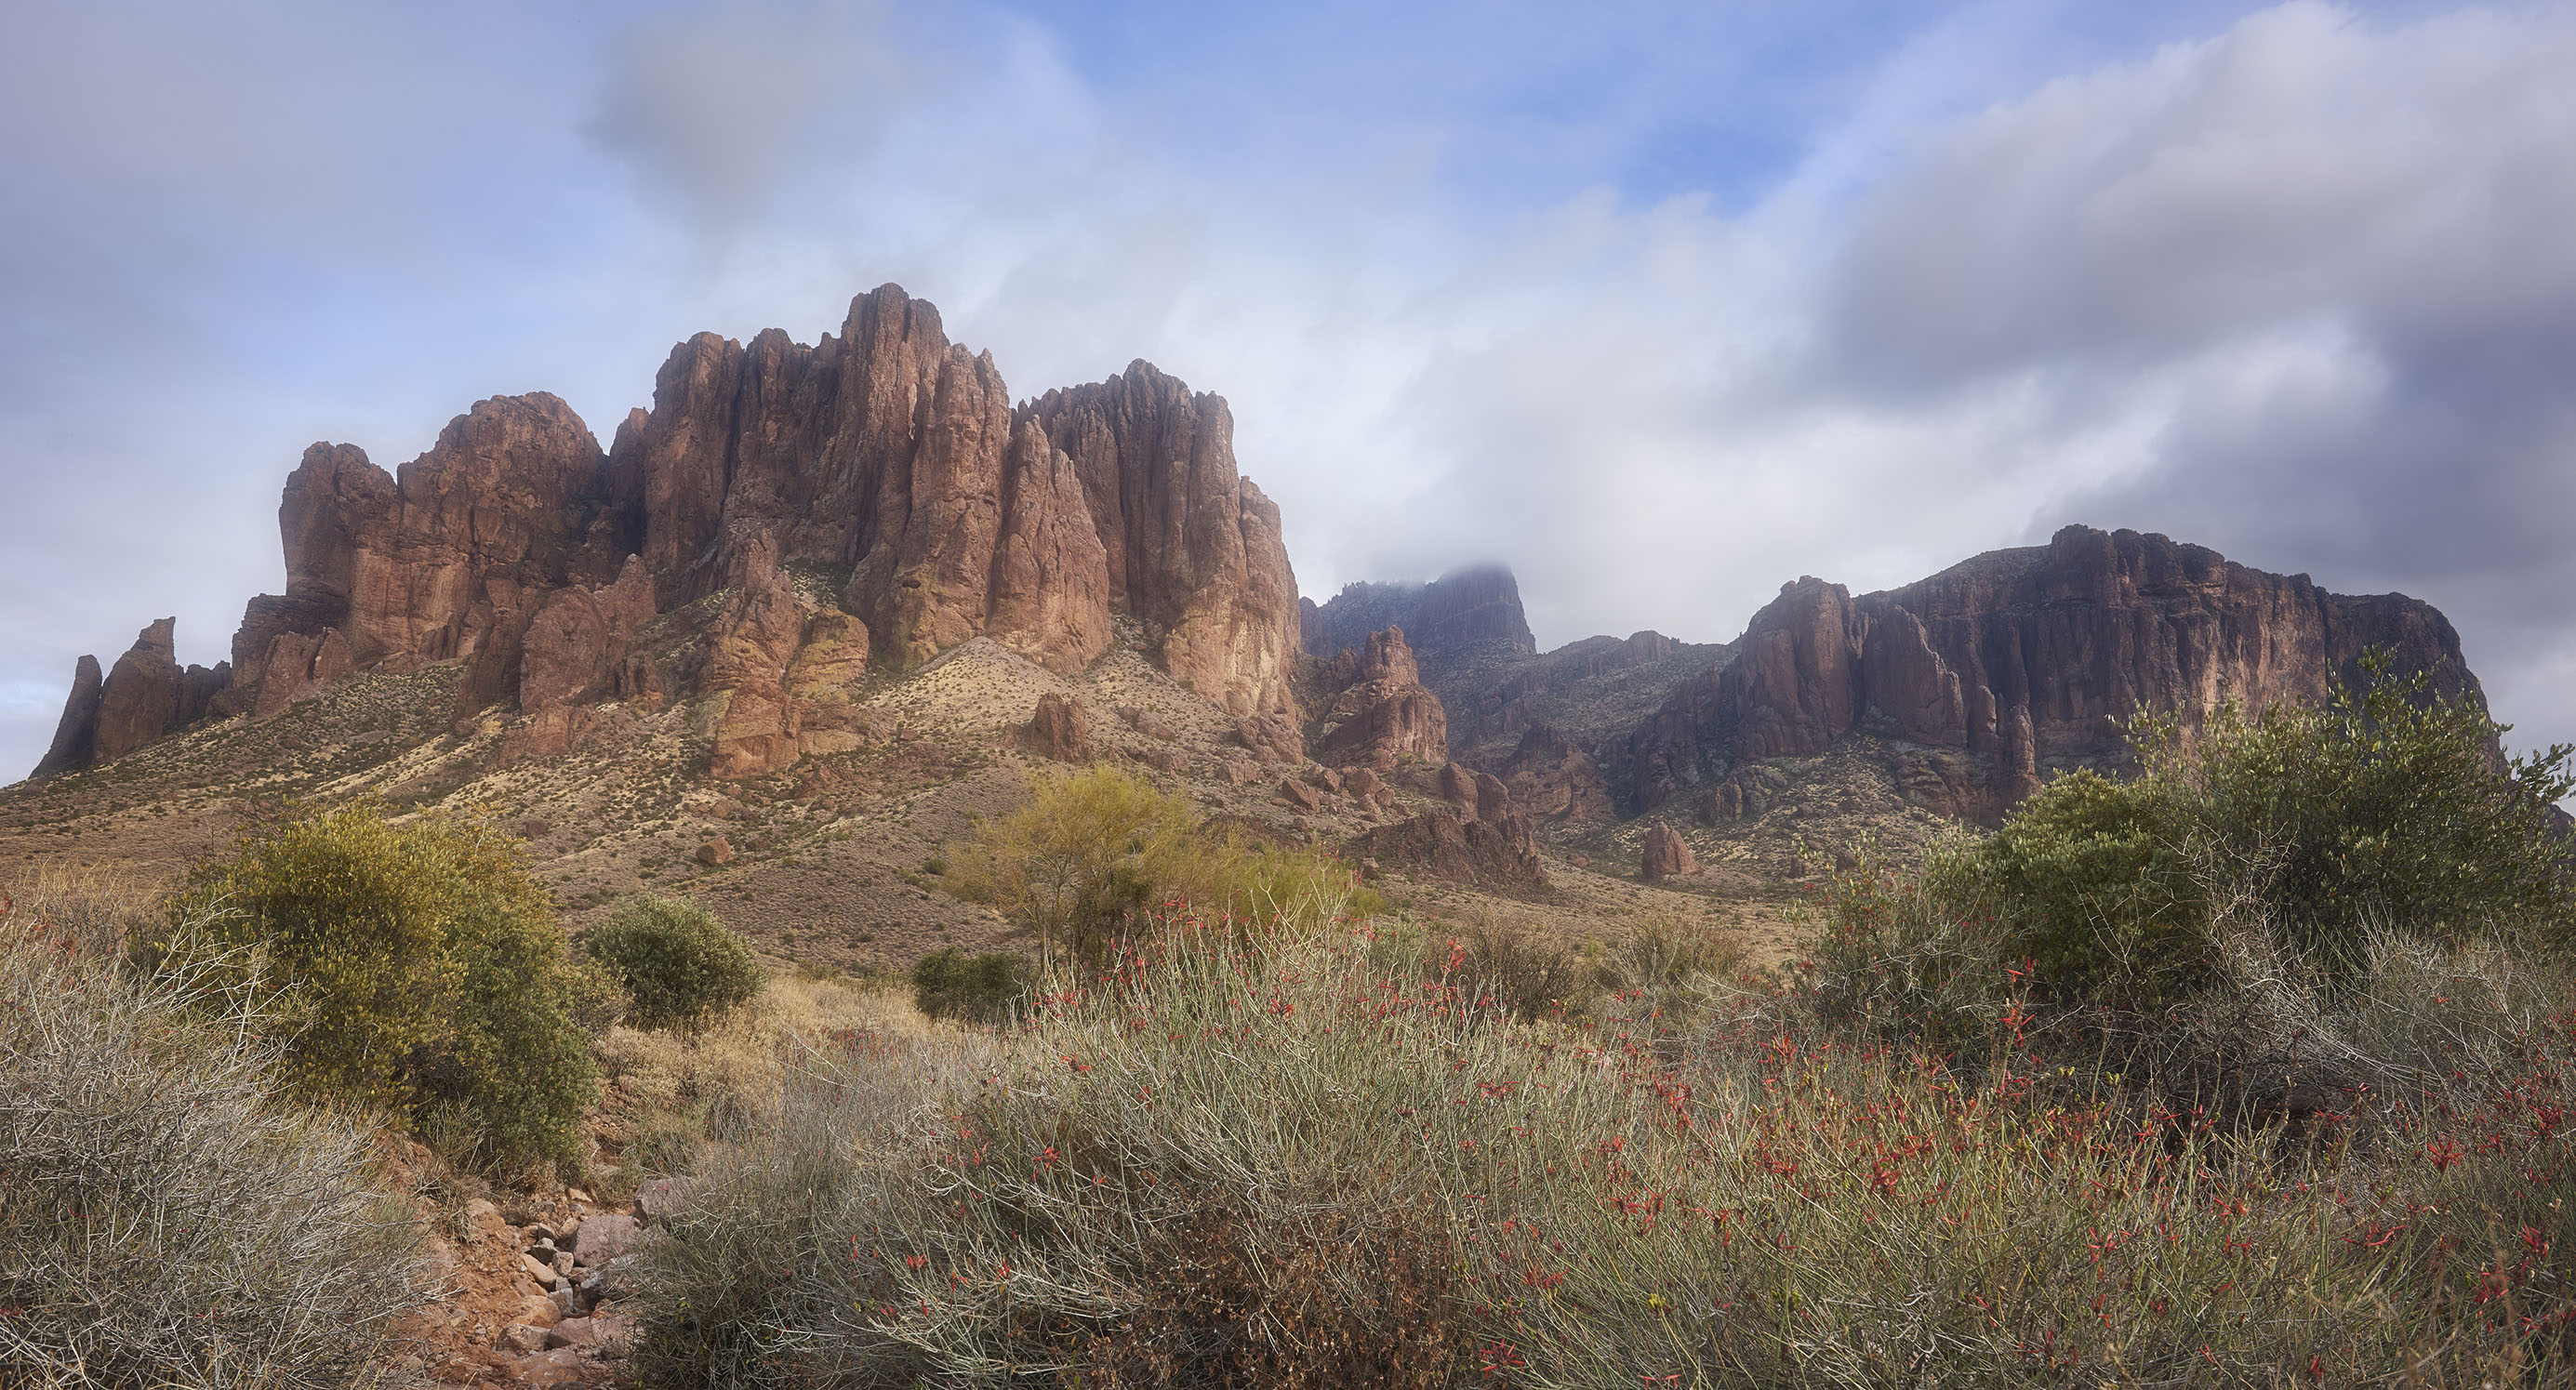 arizona landscape photography, superstition mountains arizona, arizona landscape photographer